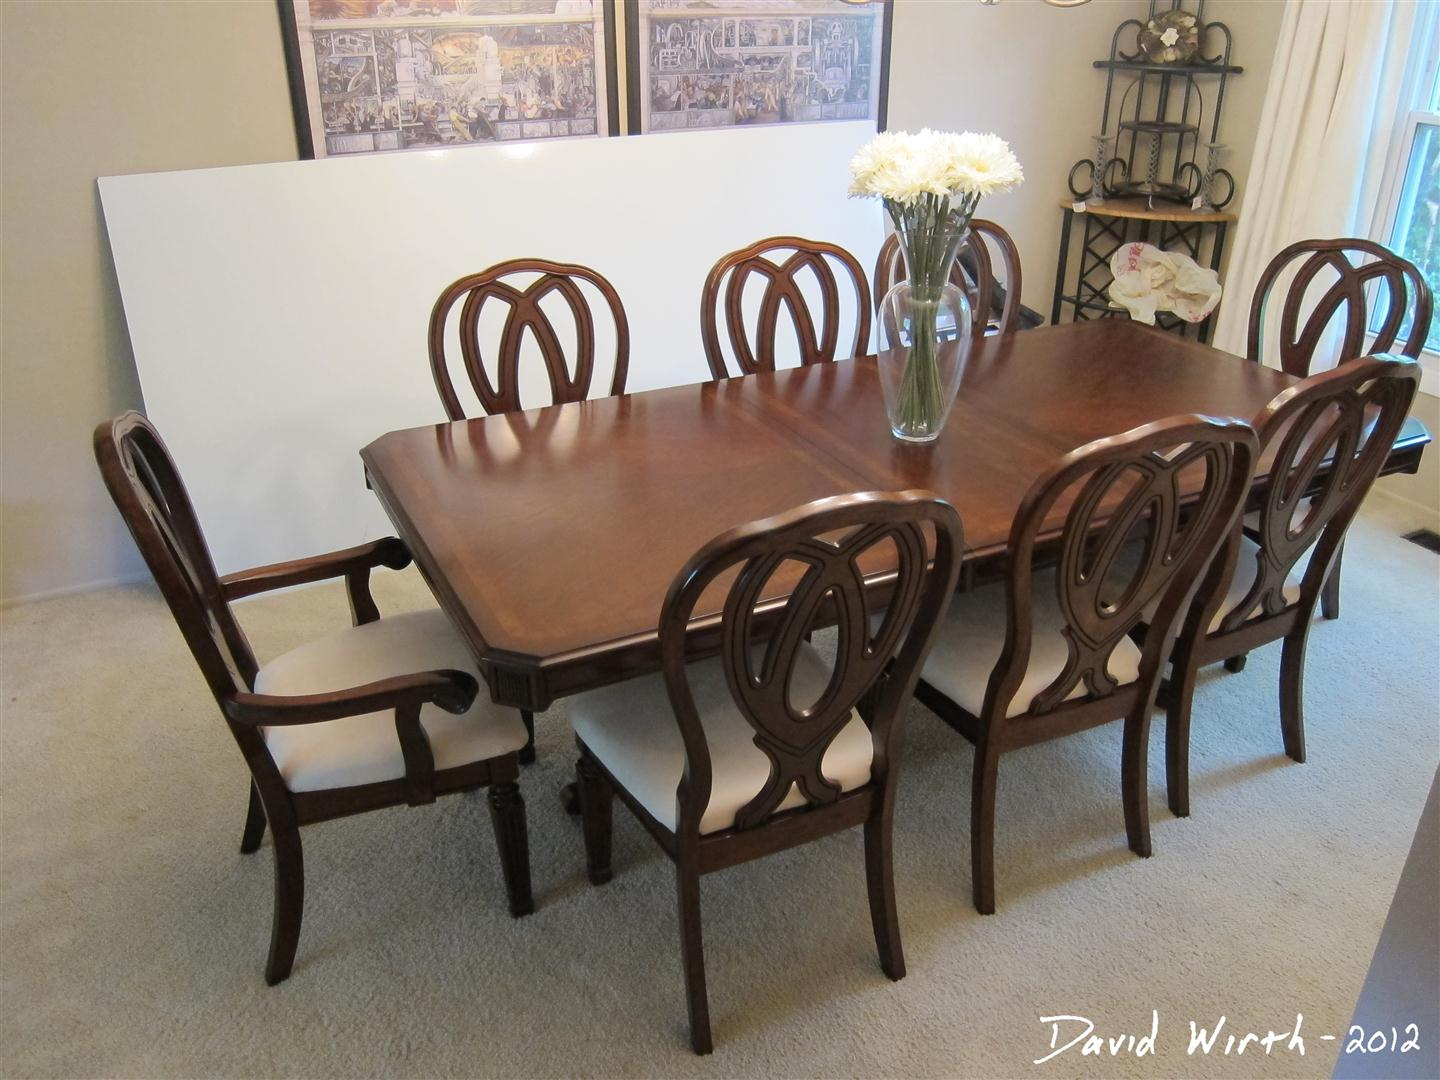 Amazing Dining Room Table and Chairs 1440 x 1080 · 184 kB · jpeg